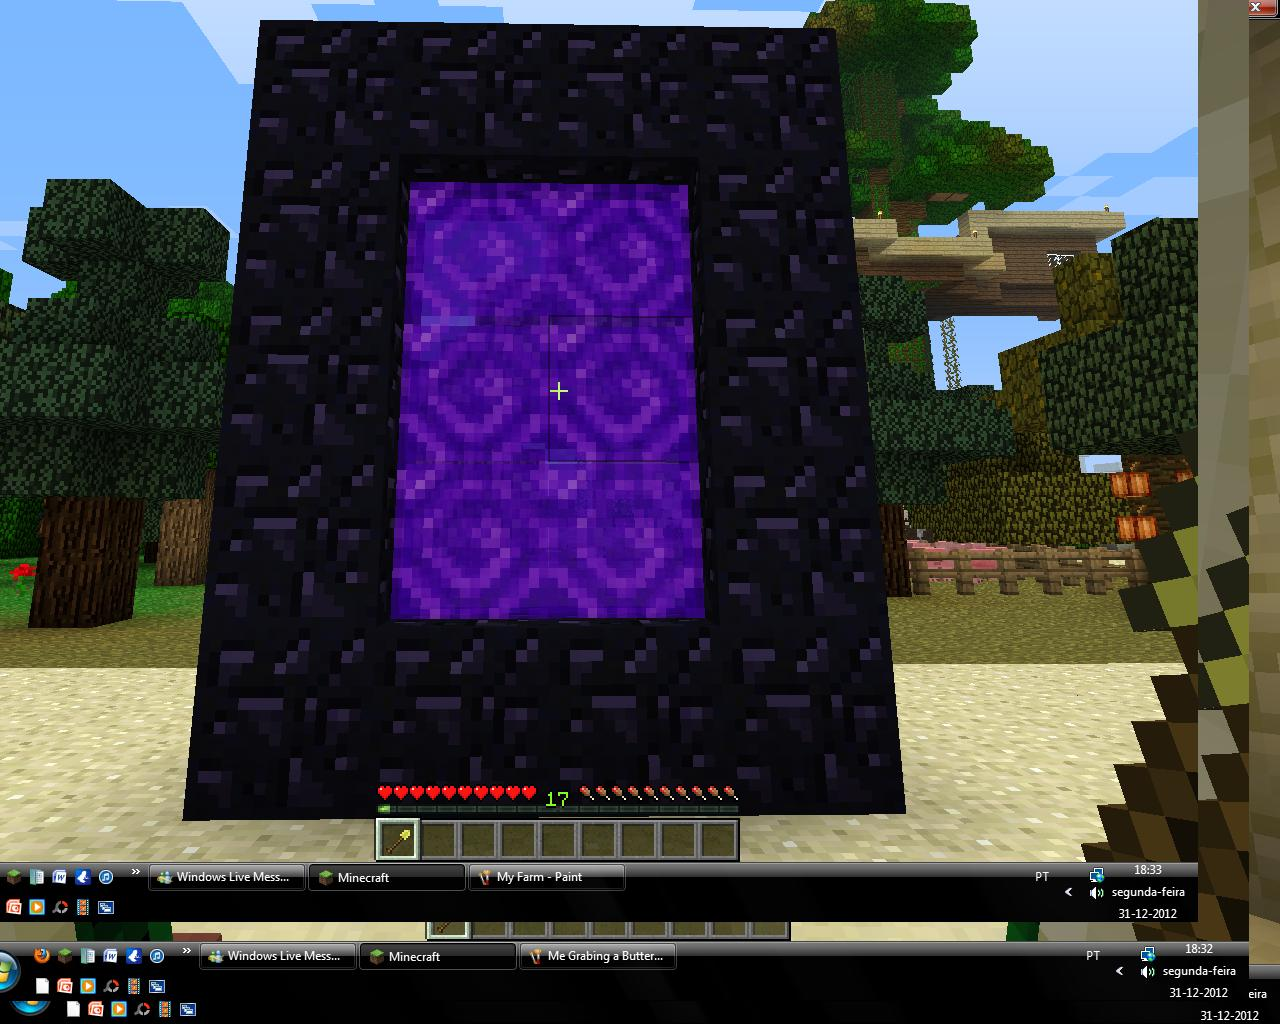 how to make a end portal with minecraft 1.10.2